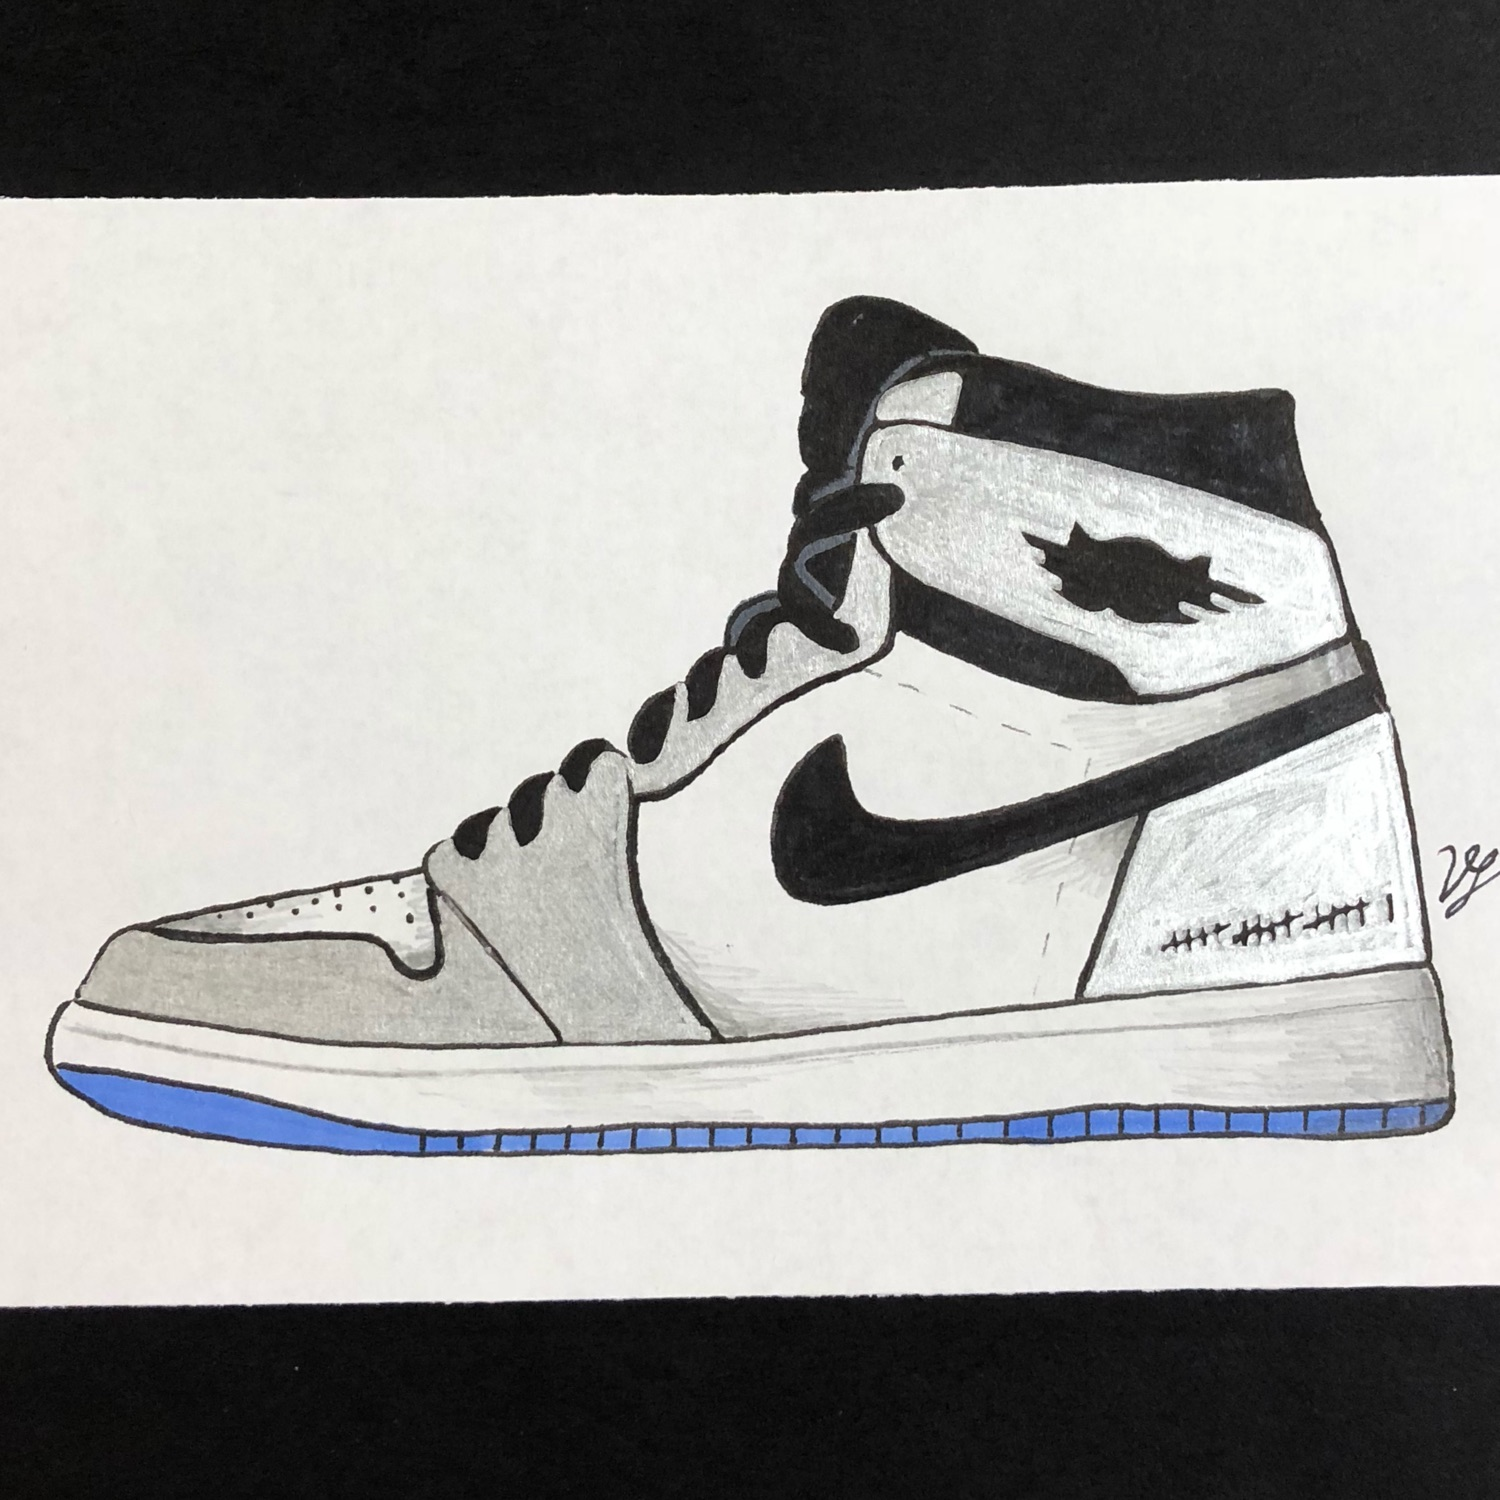 separation shoes e10b9 c6930 Nike Air Jordan 1 Kawhi Leonard Silver Art